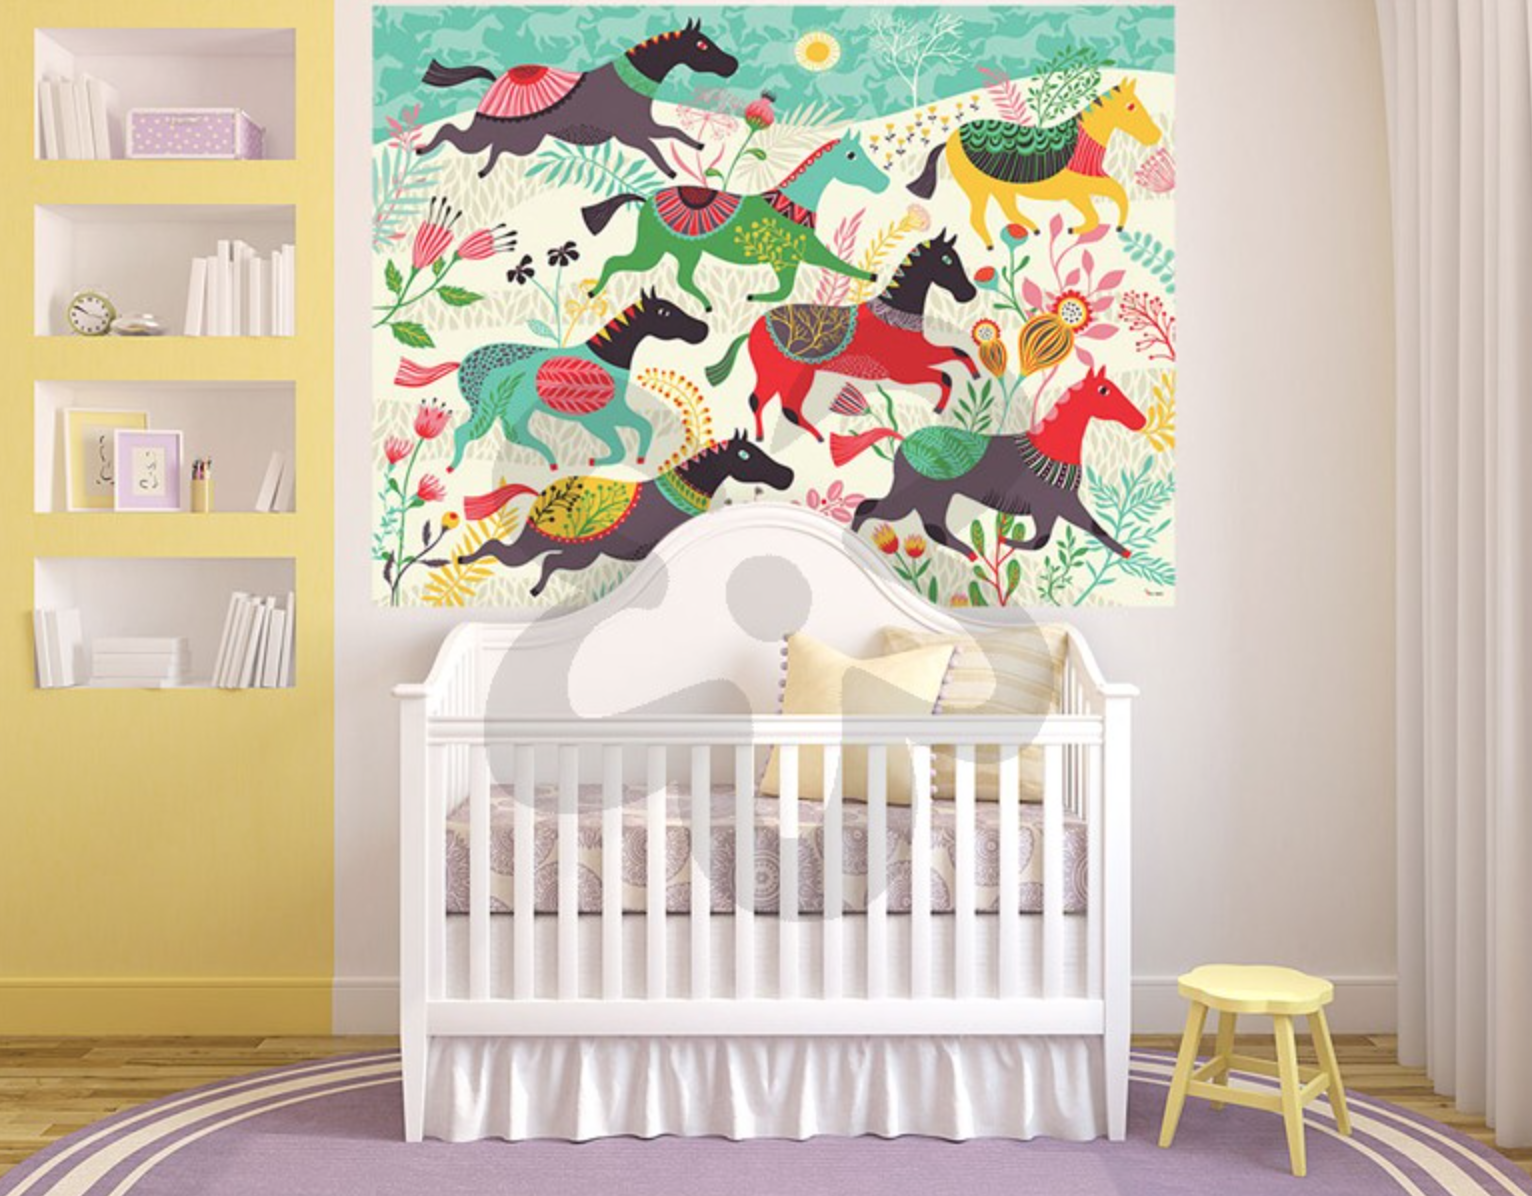 Nursery room horse decal